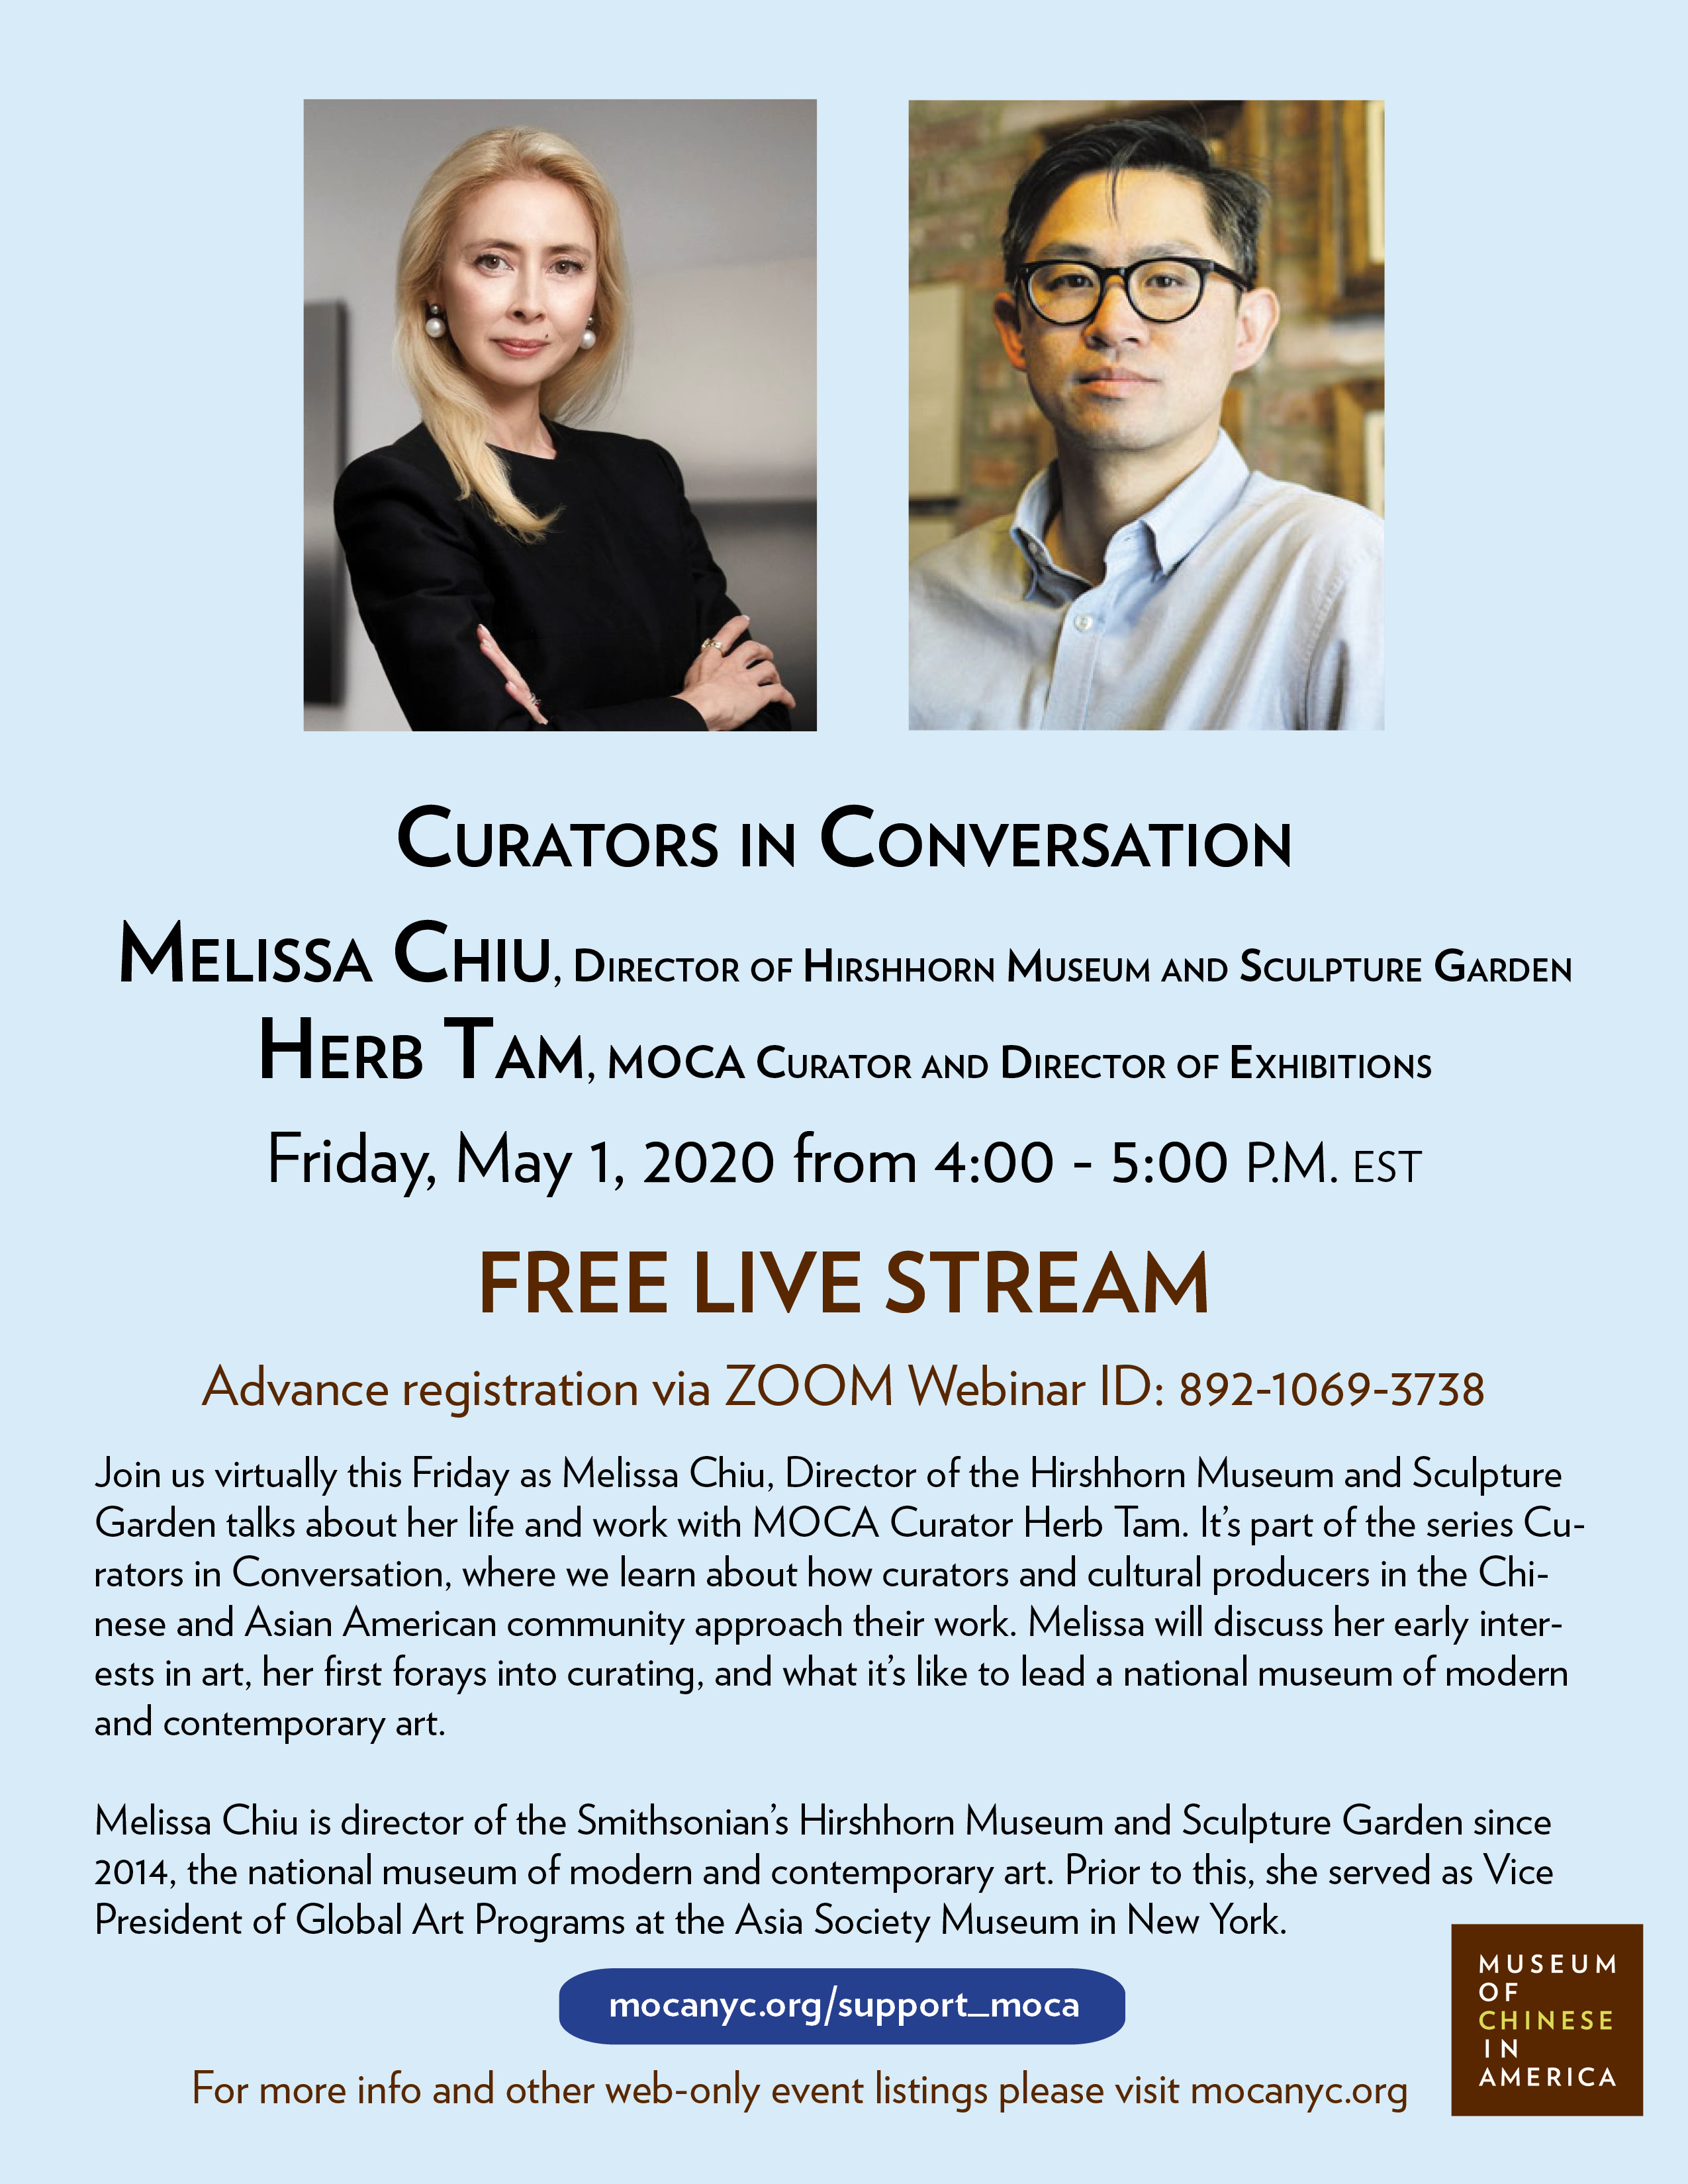 [LIVE STREAM] Curators in Conversation: Melissa Chiu, Director of Hirshhorn Museum and Sculpture Garden